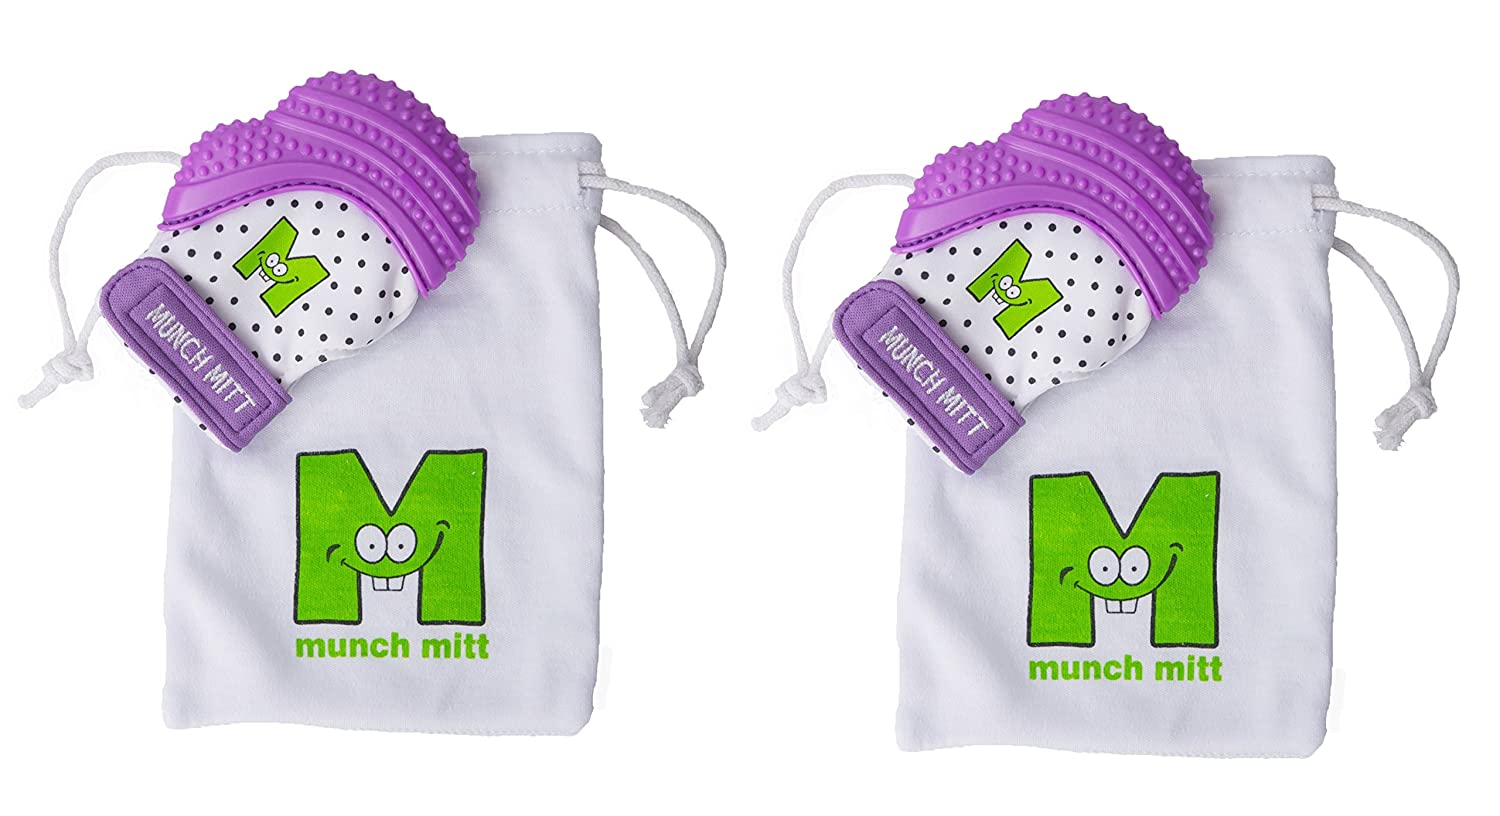 Munch Mitt® Teething Toy Stays on Baby's Hand is Self-Soothing Entertainment and Gives Pain Relief from Teething plus is Ideal Baby Shower Gift that includes Handy Travel/Laundry Bag– Set of 2 Purple No Model